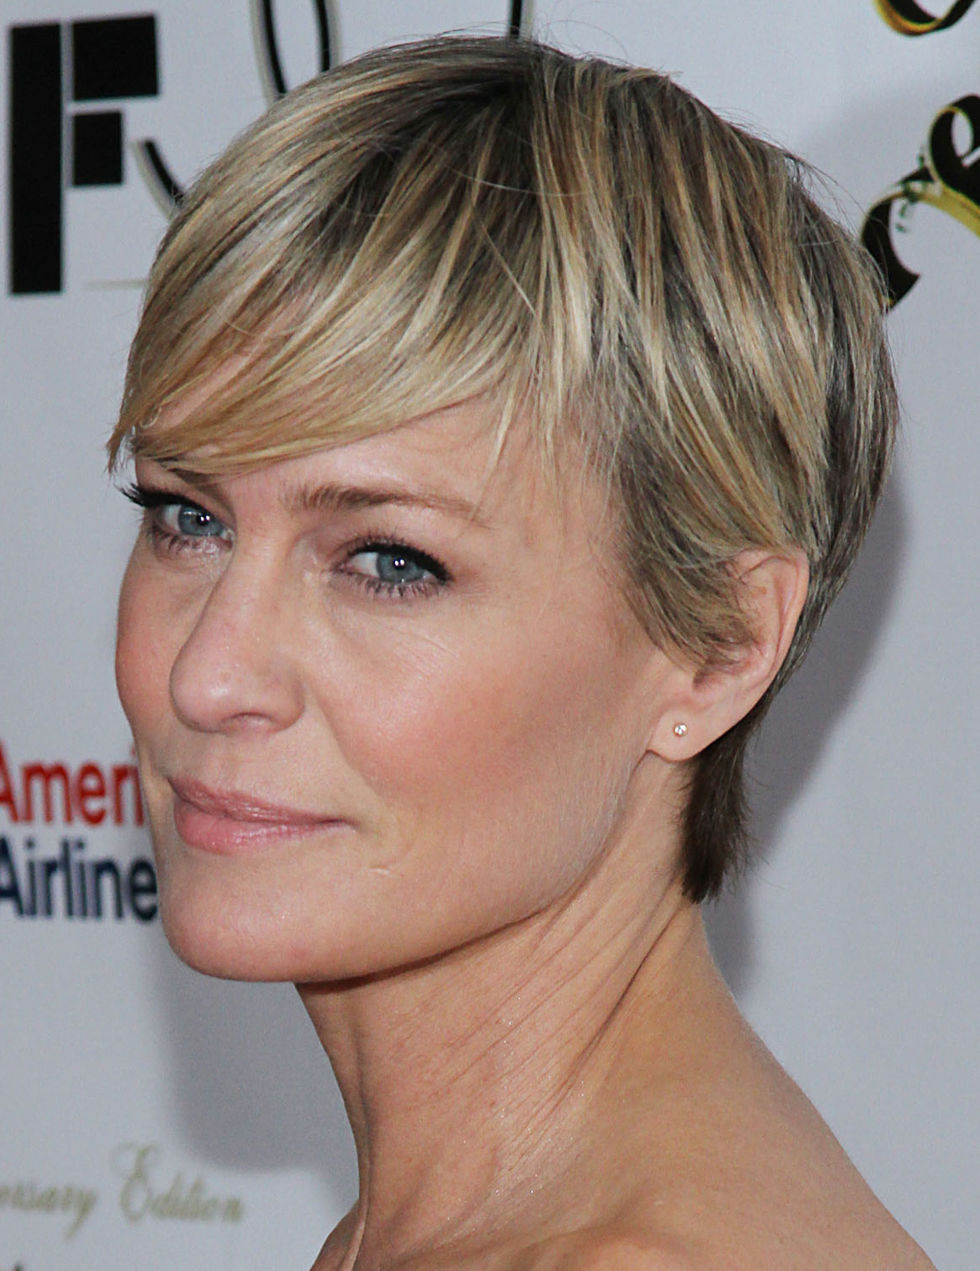 Robin Wright Hair 2013 Celebrity hair - best celeb hairstyles